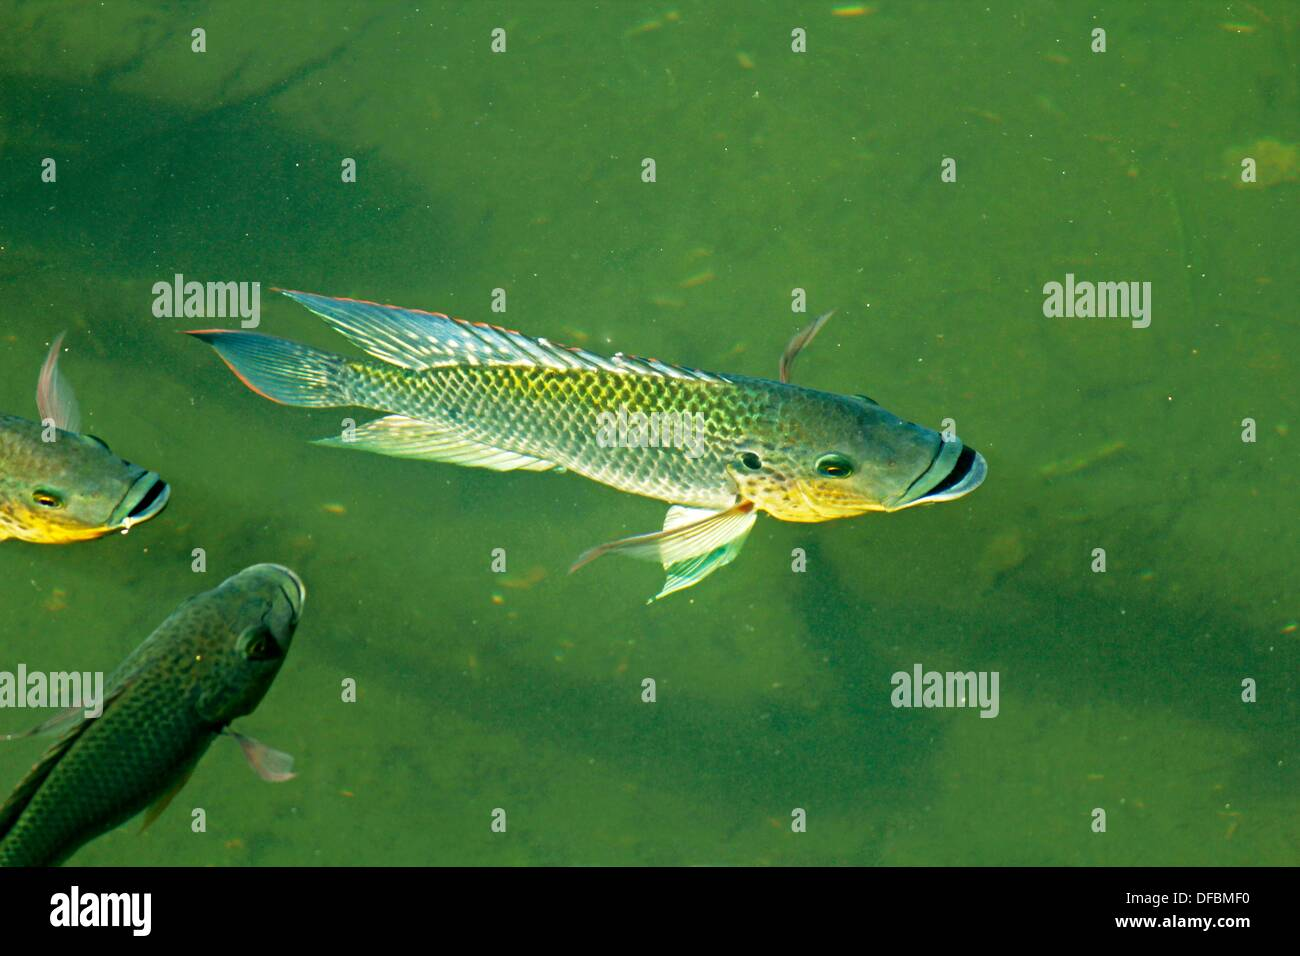 Blue Kurper Mozambique Tilapia Oreochromis Mossambicus Fishes In Stock Photo Royalty Free